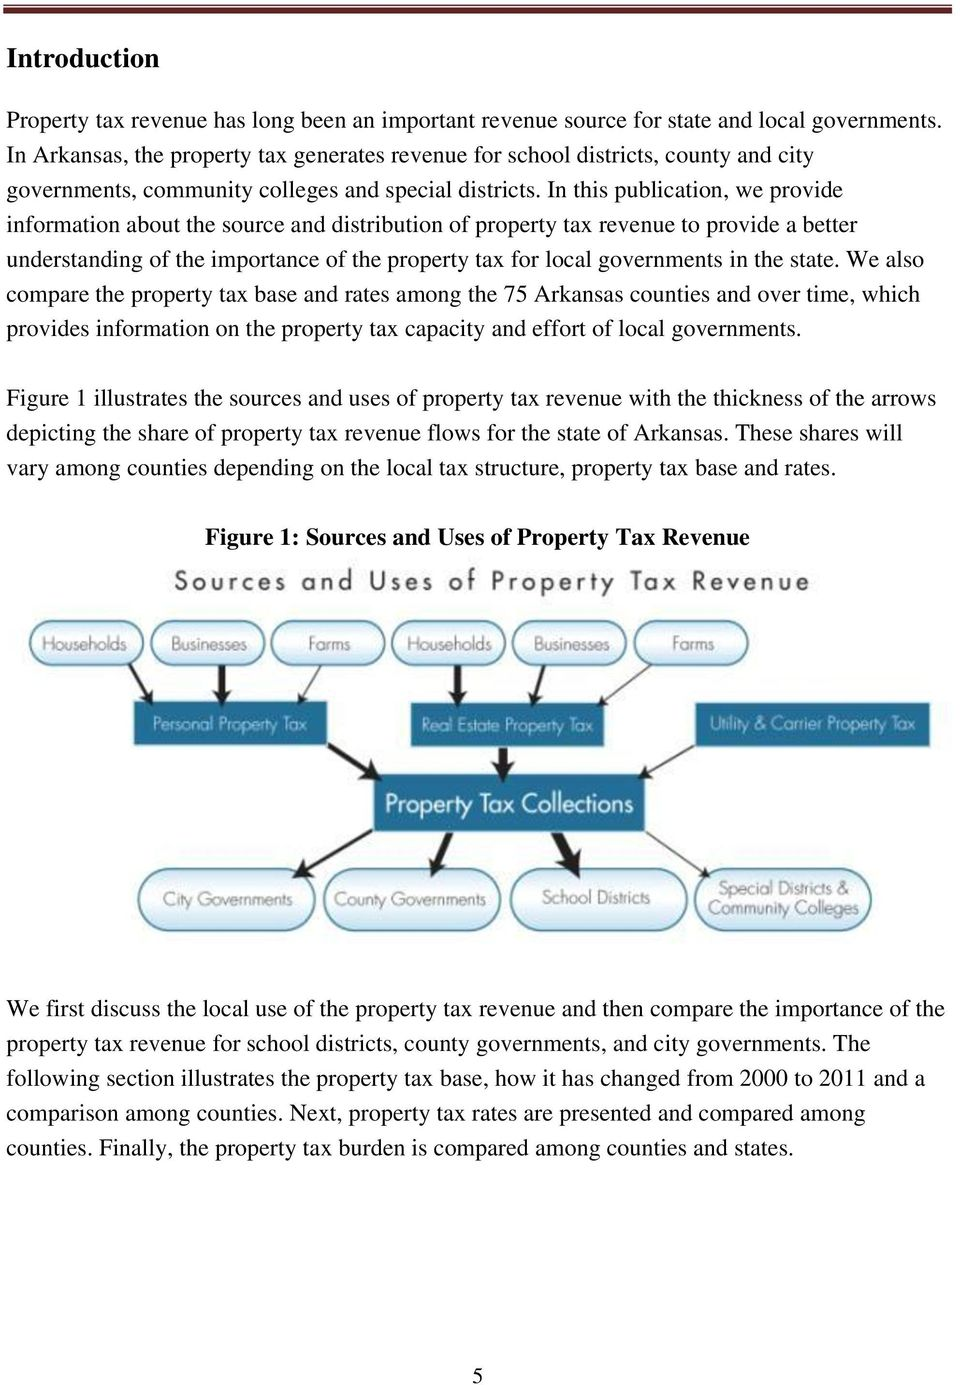 In this publication, we provide information about the source and distribution of property tax revenue to provide a better understanding of the importance of the property tax for local governments in